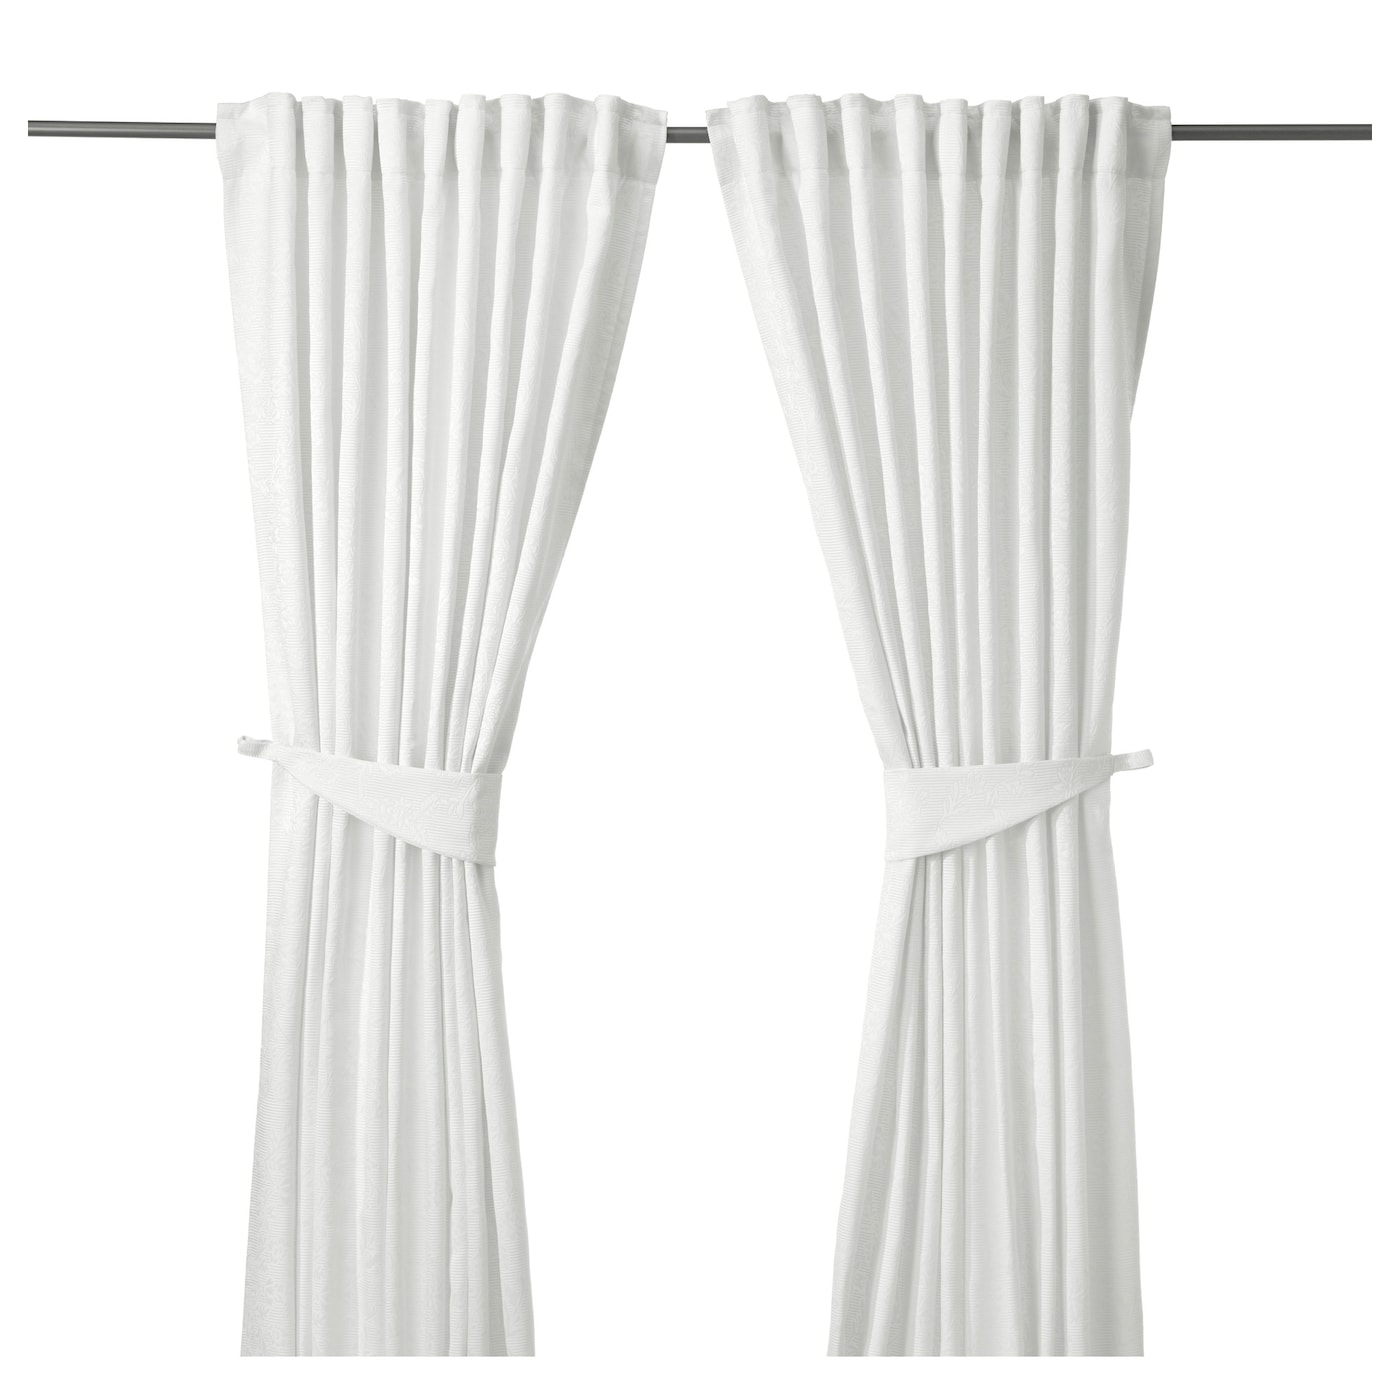 Curtains Blekviva Curtains With Tie Backs 1 Pair White 145x250 Cm Ikea